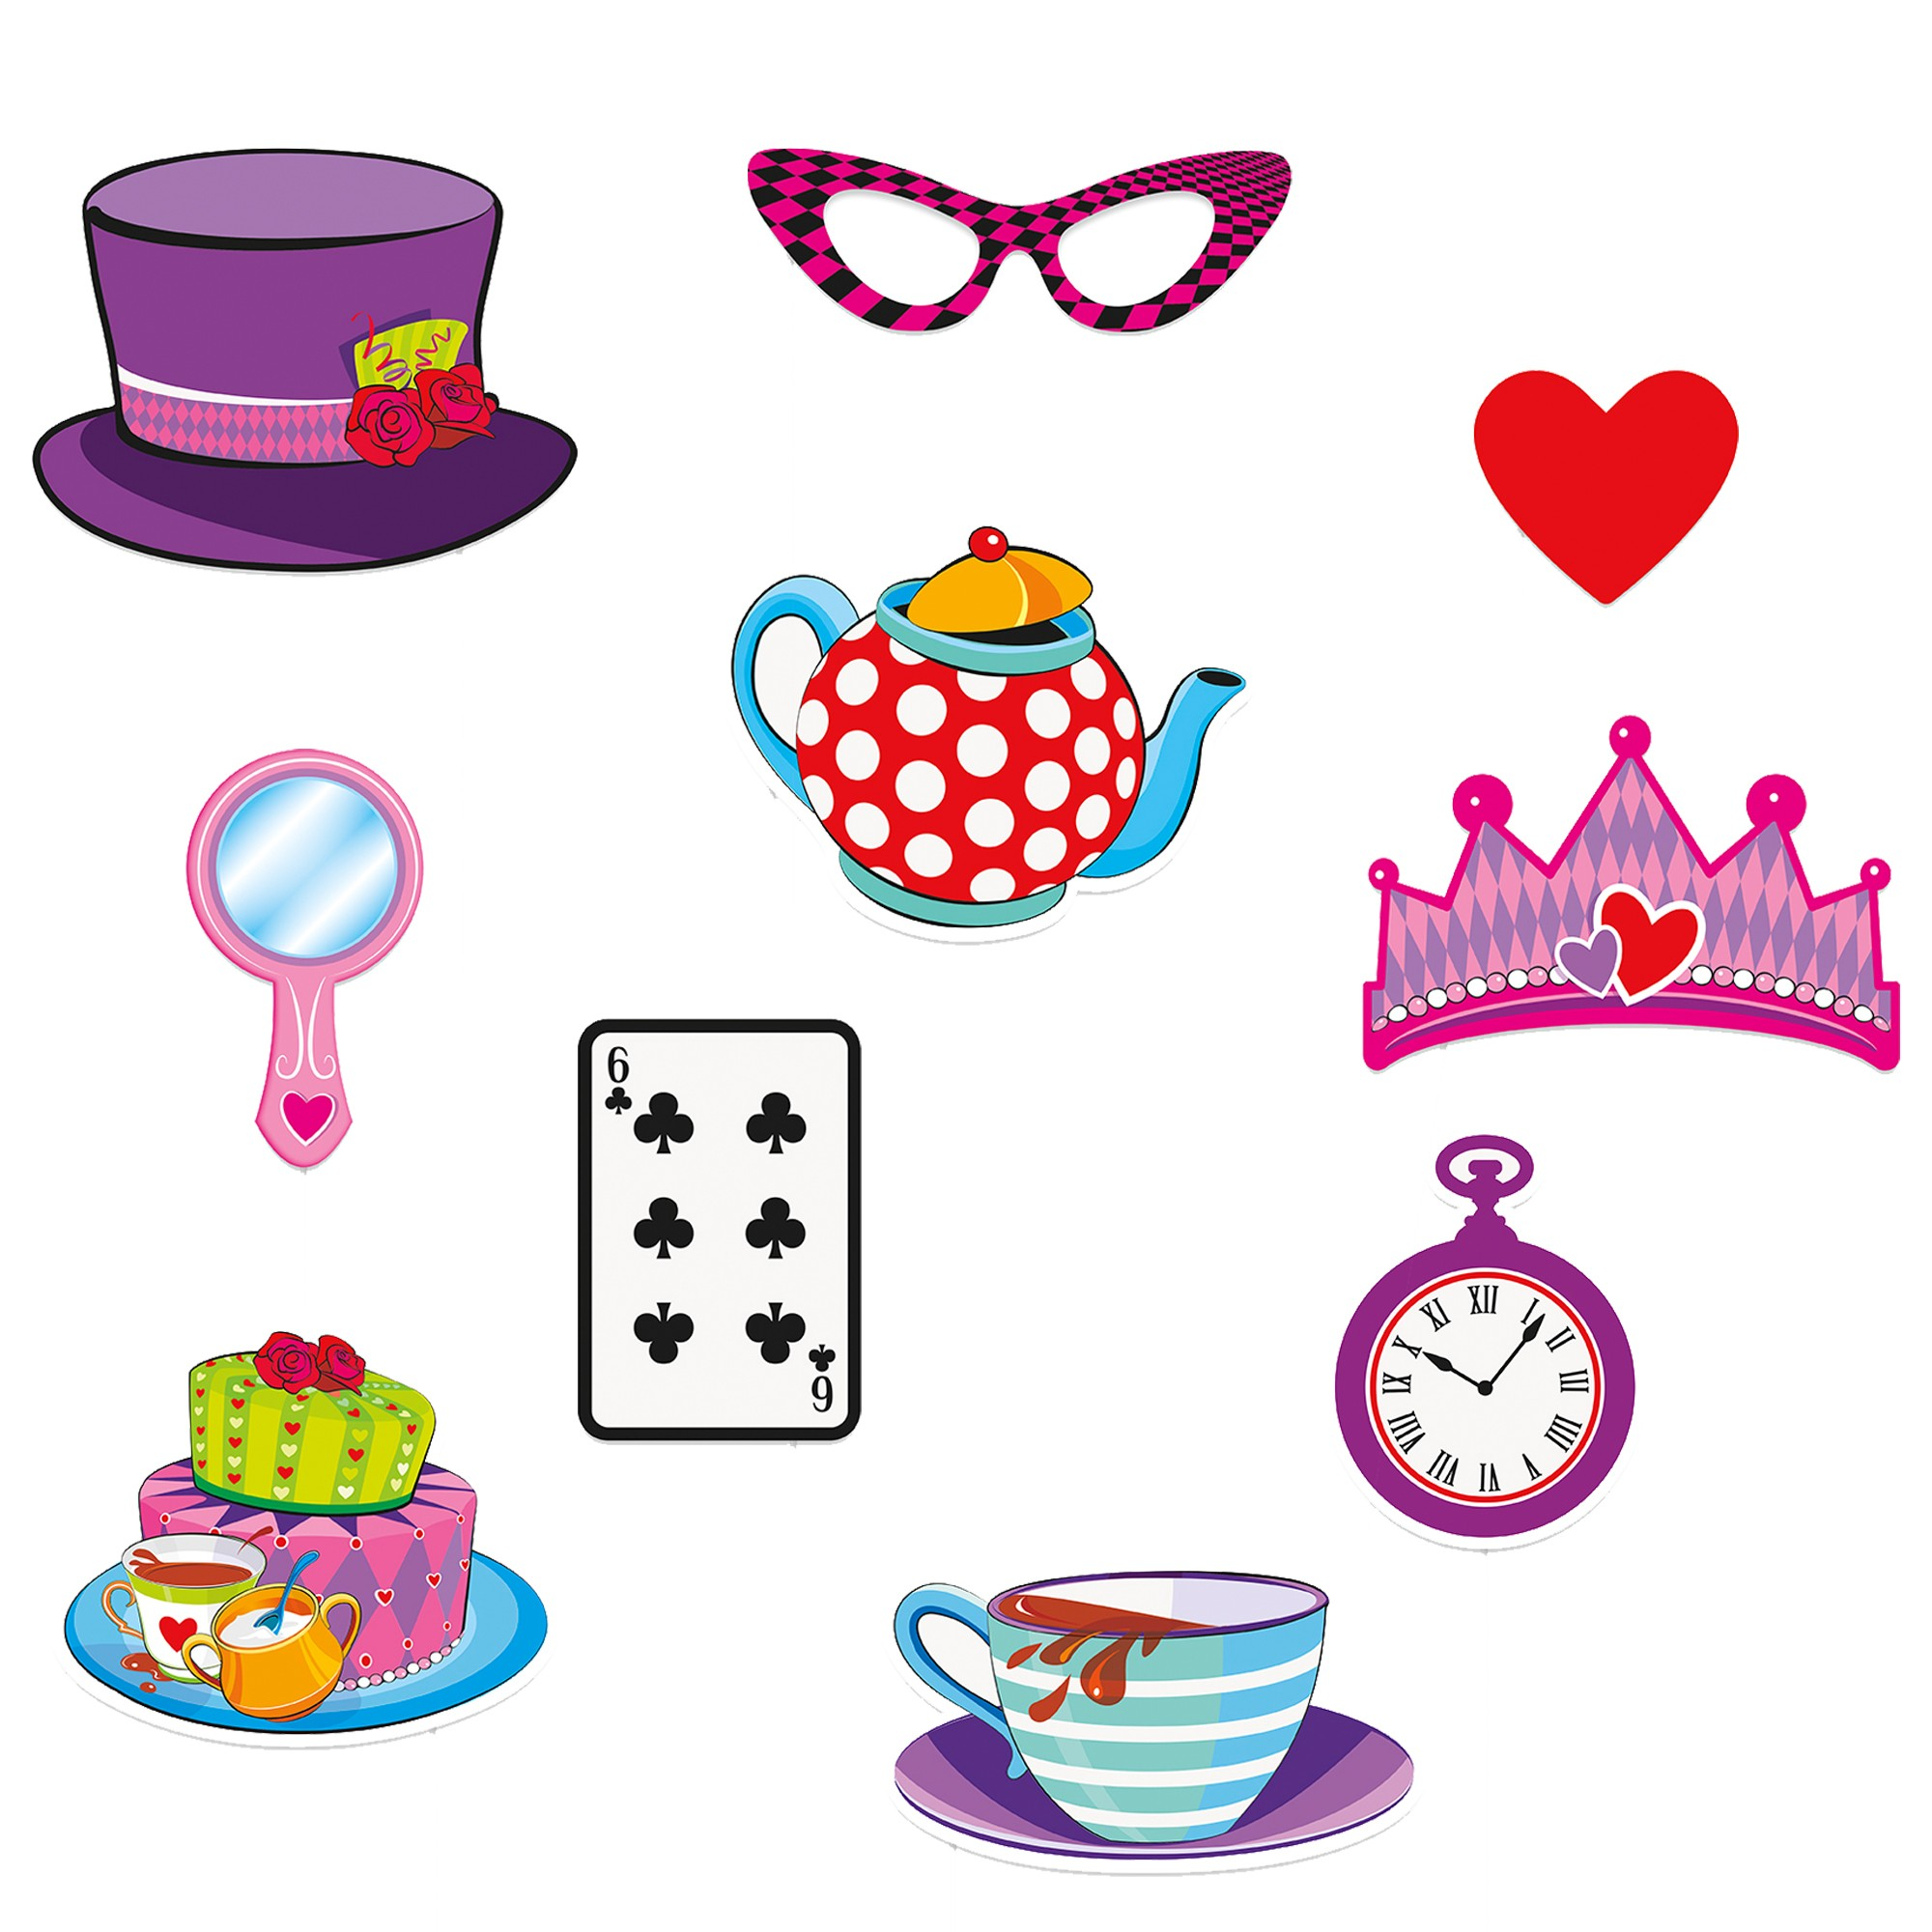 Cake clipart mad hatter, Cake mad hatter Transparent FREE.